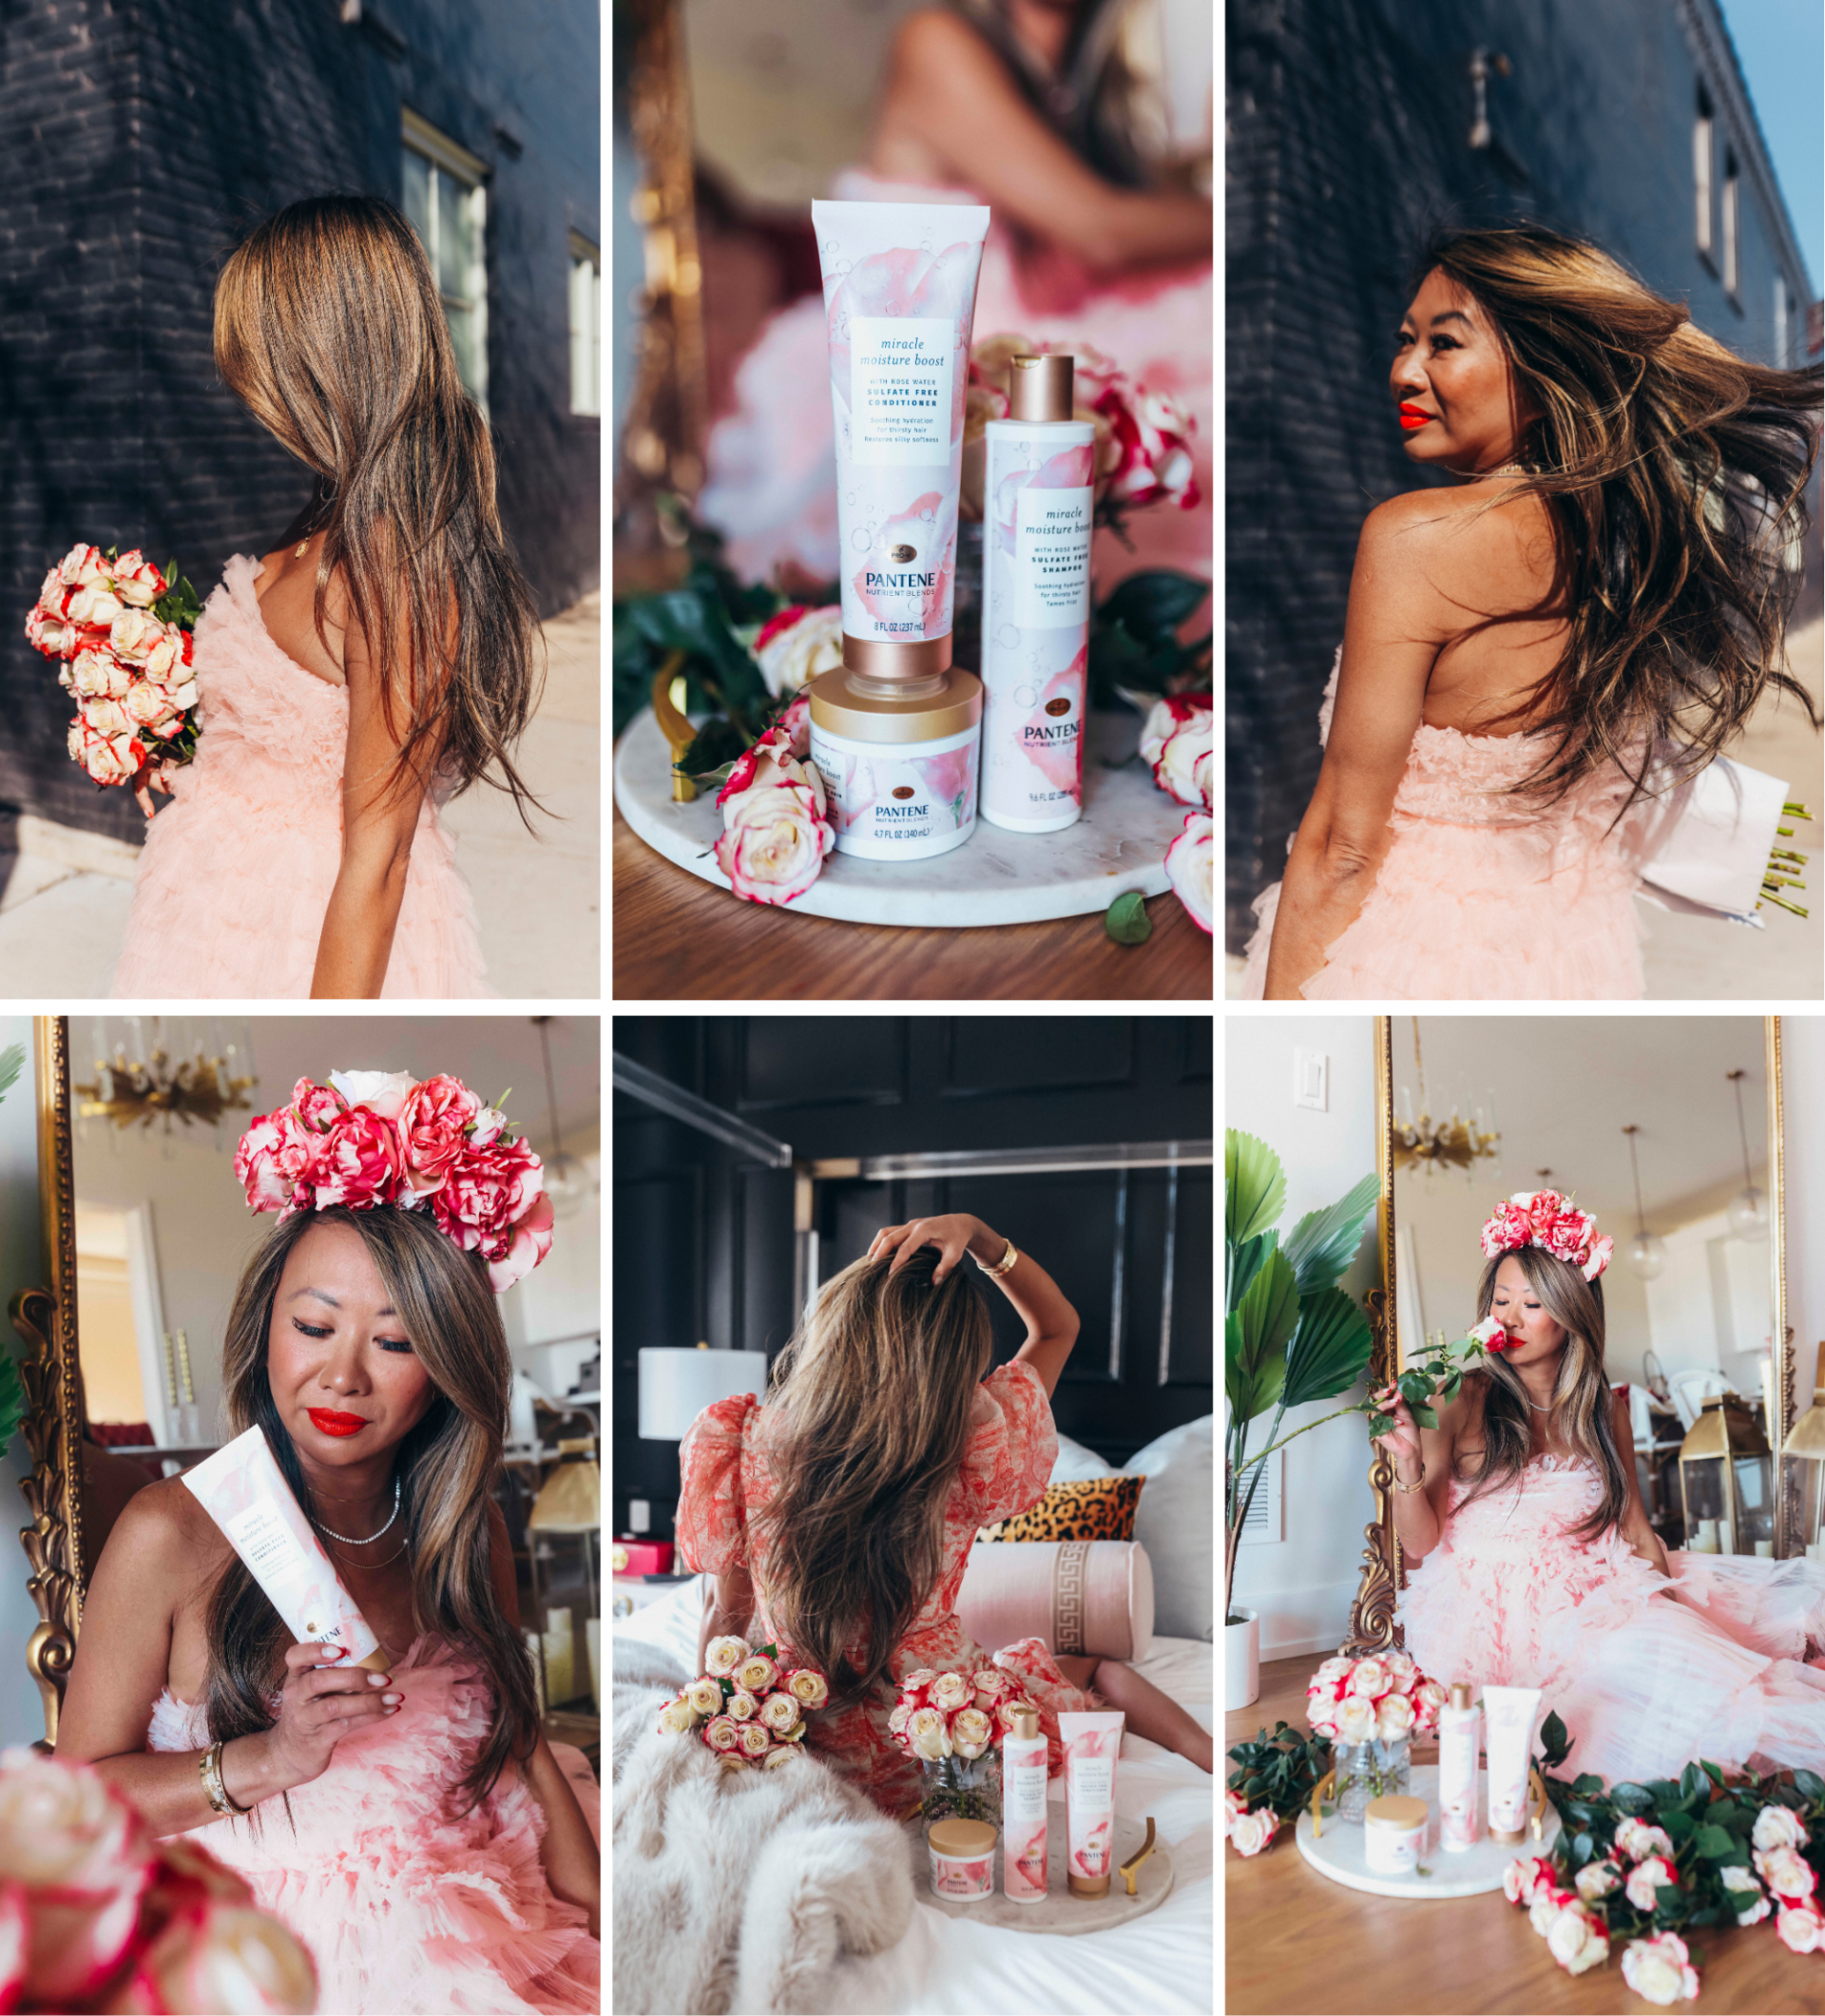 pantene rose hair inspiration, Pantene rose collection, hair routine, hair care tips, beauty routine, beauty blogger, self care, rose hair inspiration, rose hair photography, rose hair aesthetic, hair photography ideas, long hair inspiration, Red Soles and Red Wine, Jennifer Worman